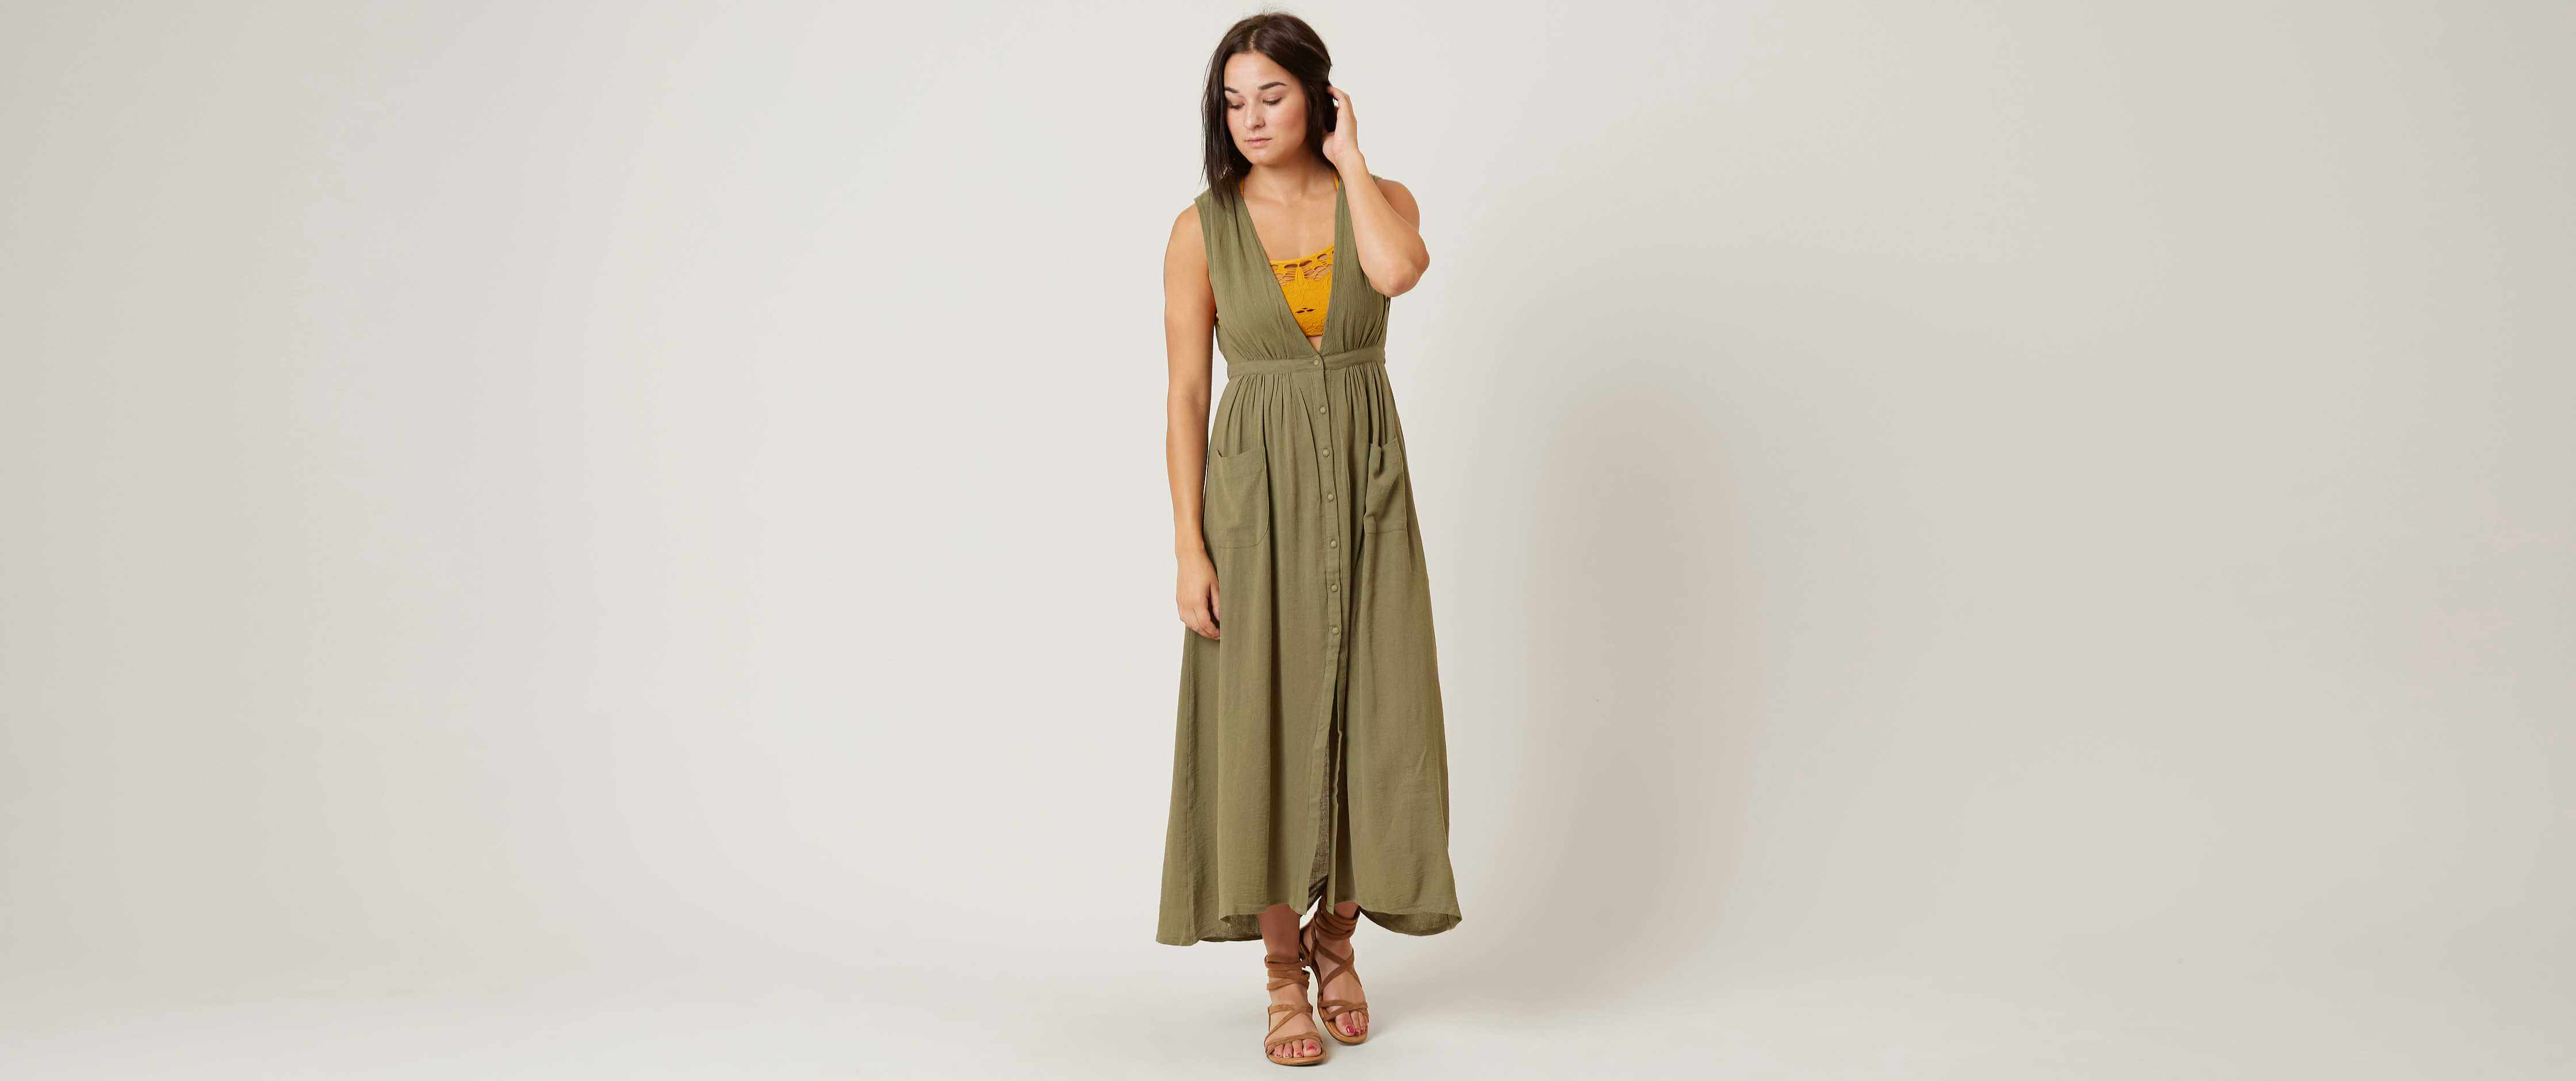 maxi dress overlay outlet